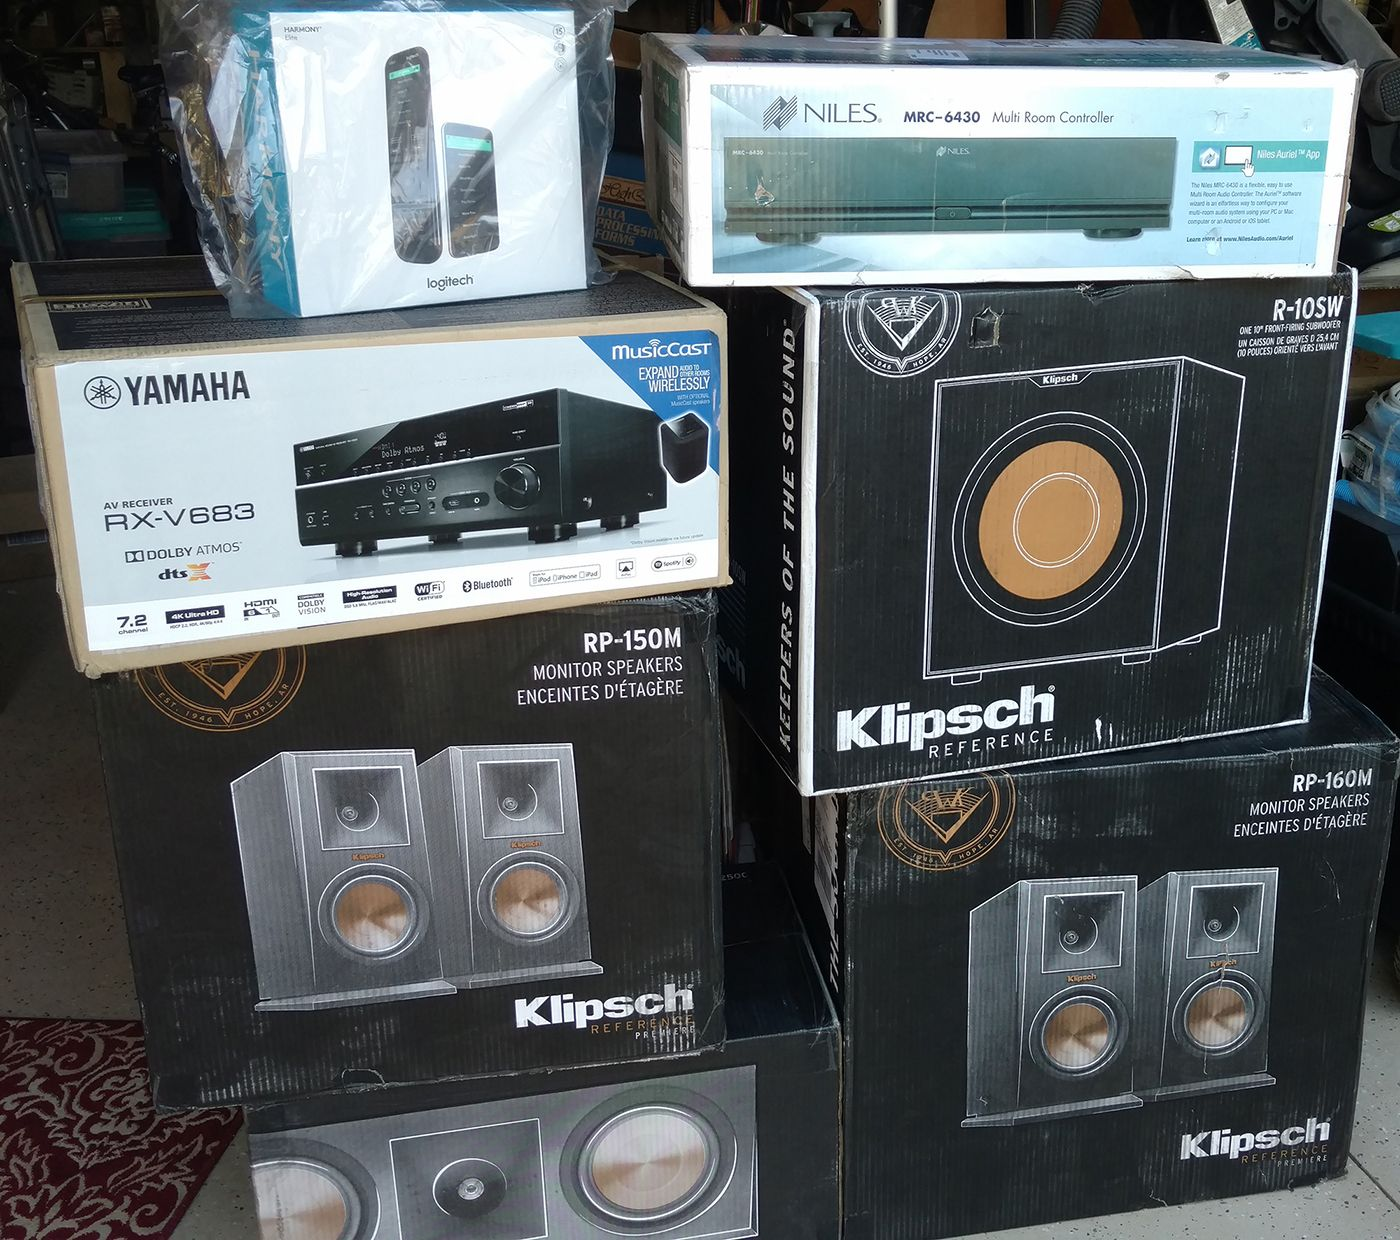 Some Of The Brands We Carry At Grand Central Wiring Klipsch Yamaha Home Audio Equipment Niles Harmony If You Need Any Help Picking Out Theater And